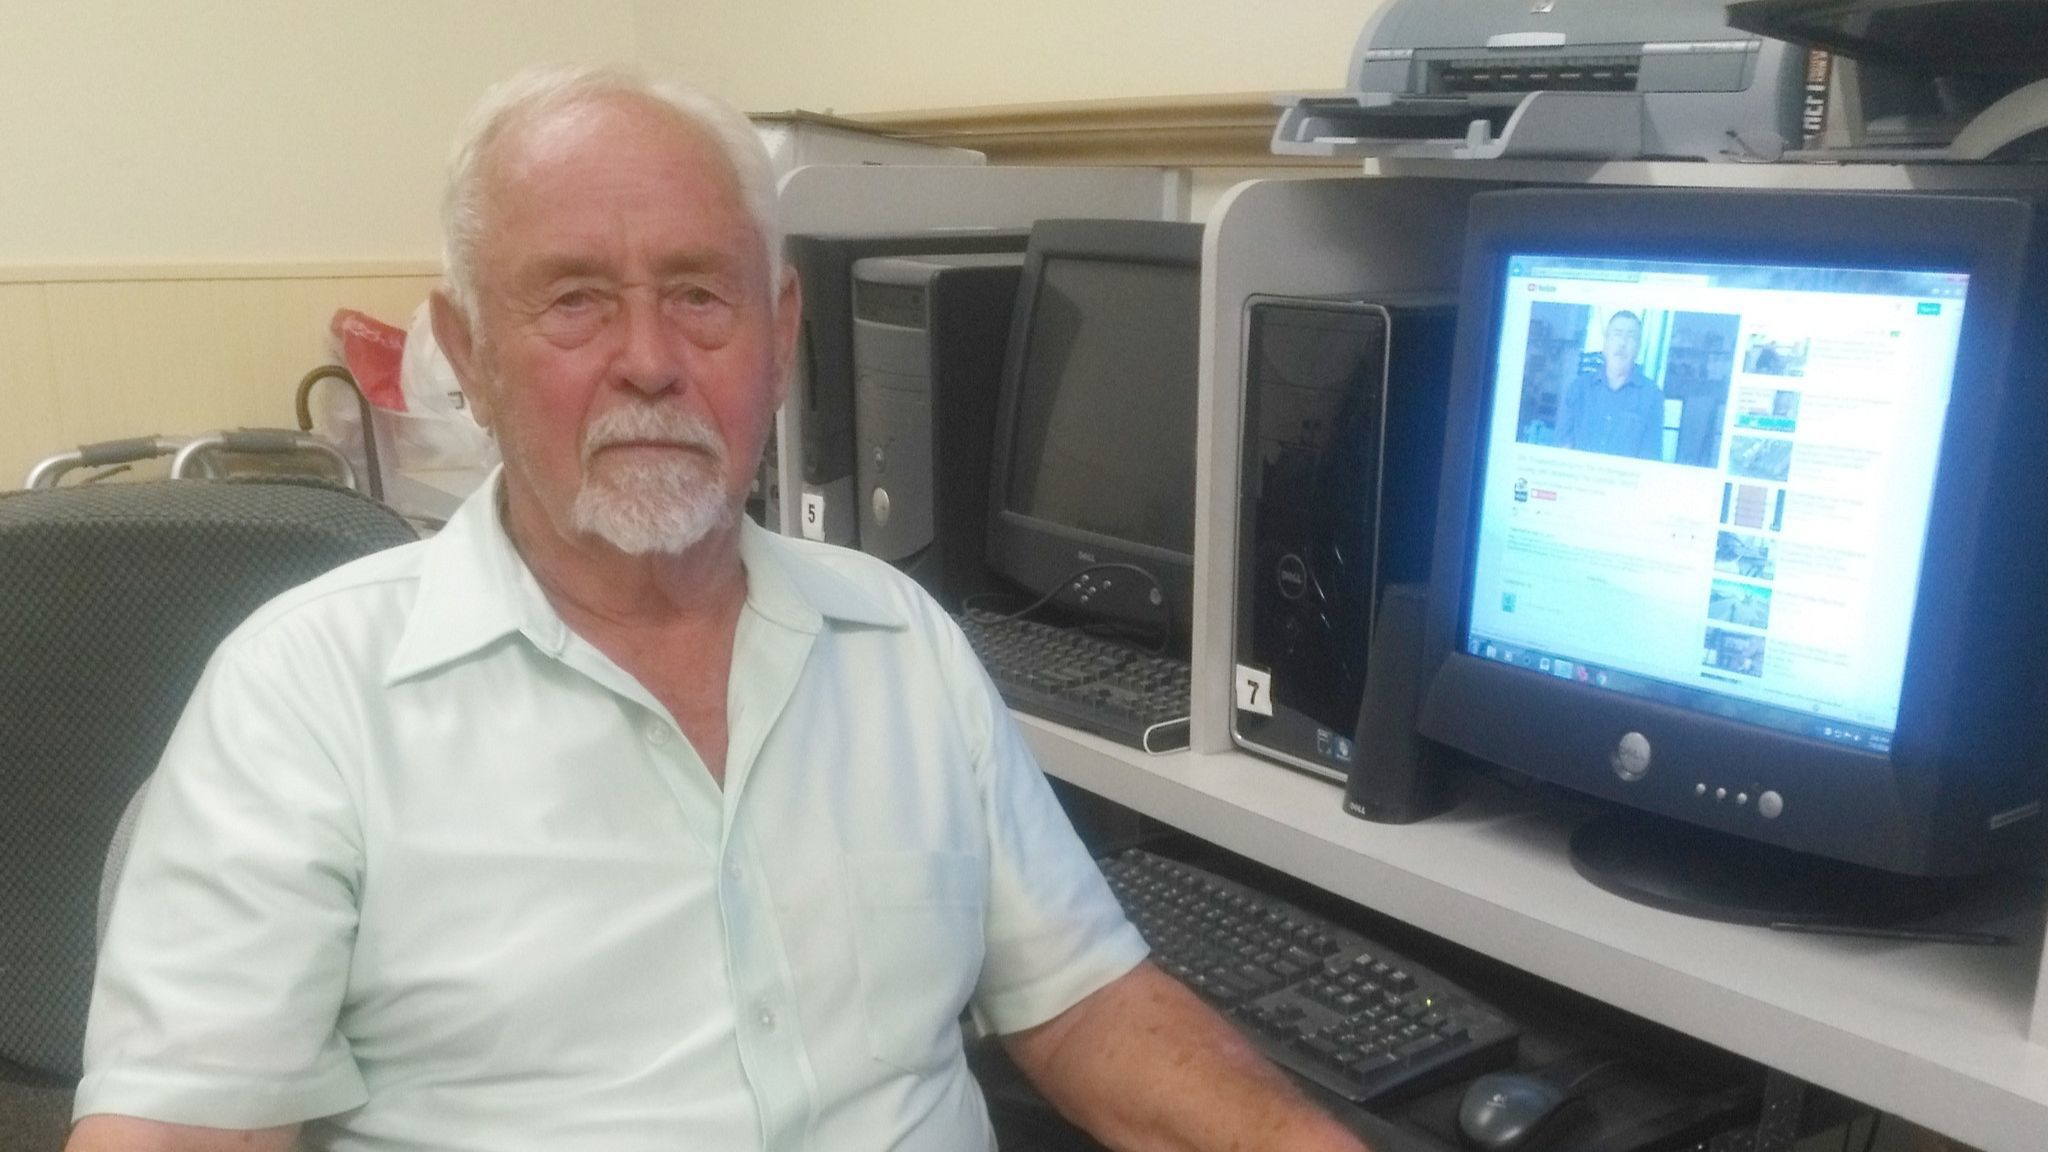 Glen Anderson cools off while working at a computer in the Ramona Senior Center on July 6.